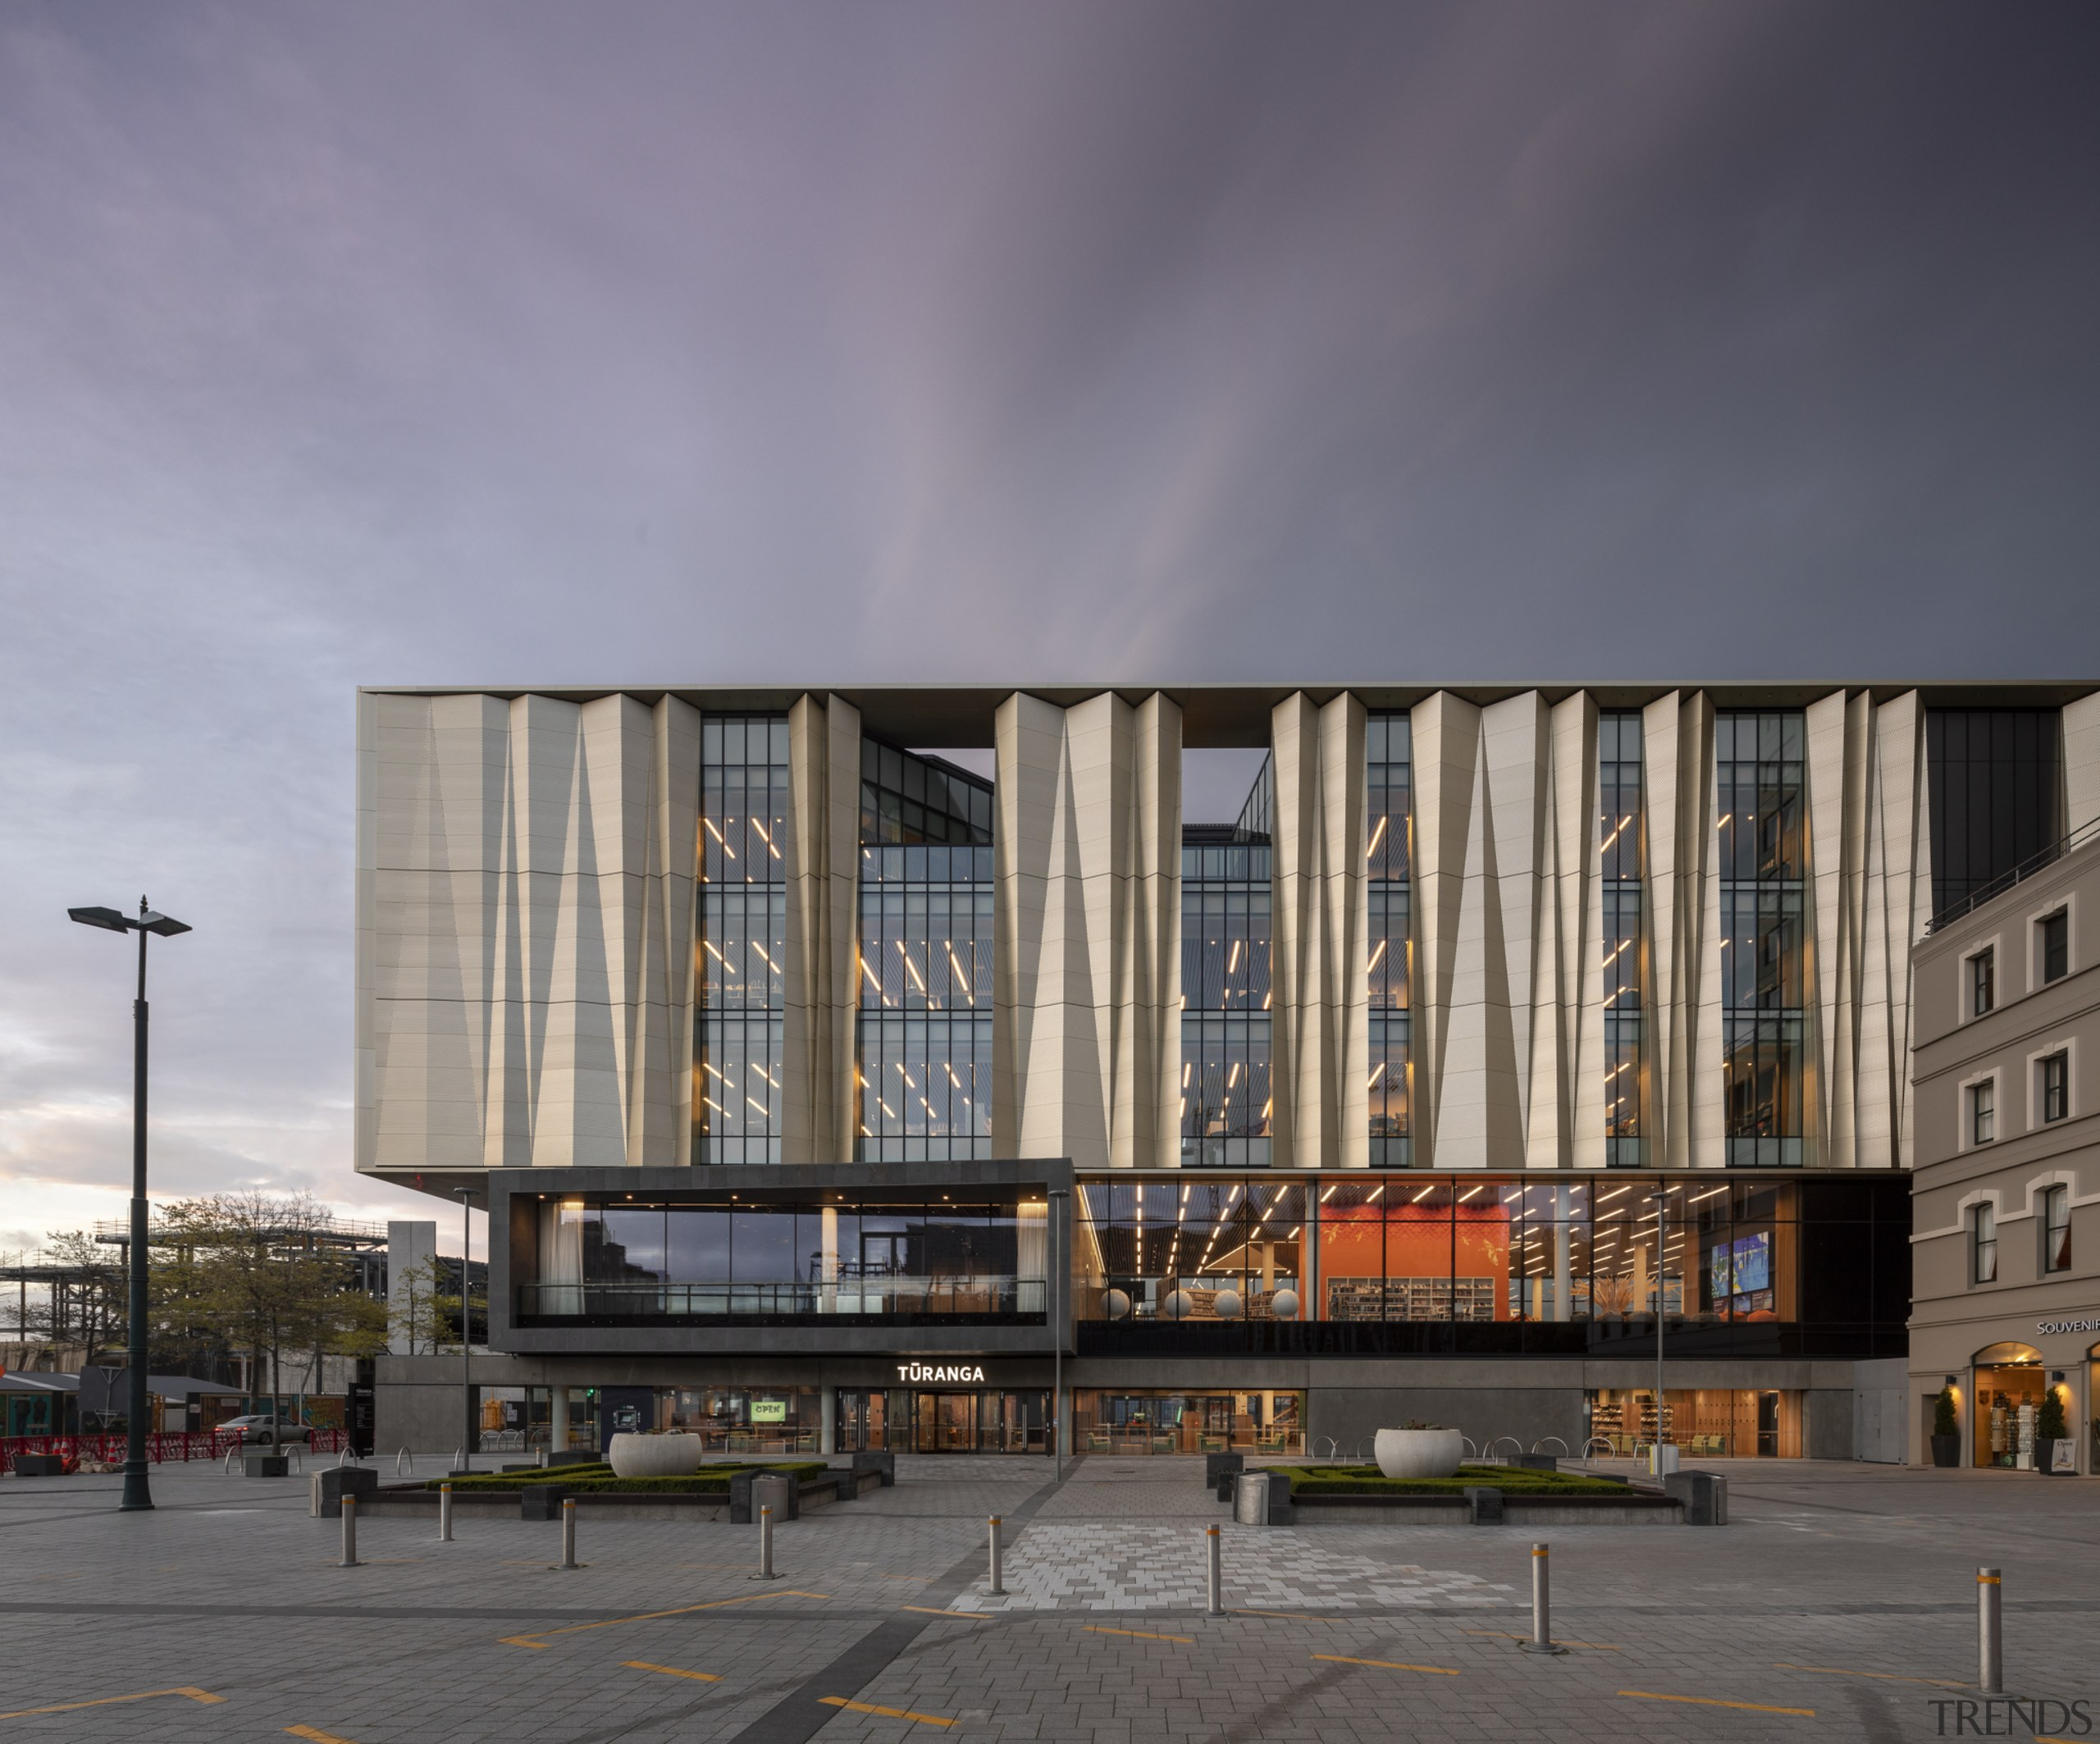 Christchurch Central Library – a celebration of culture apartment, architecture, building, commercial building, condominium, corporate headquarters, facade, headquarters, metropolis, metropolitan area, mixed use, residential area, sky, structure, gray